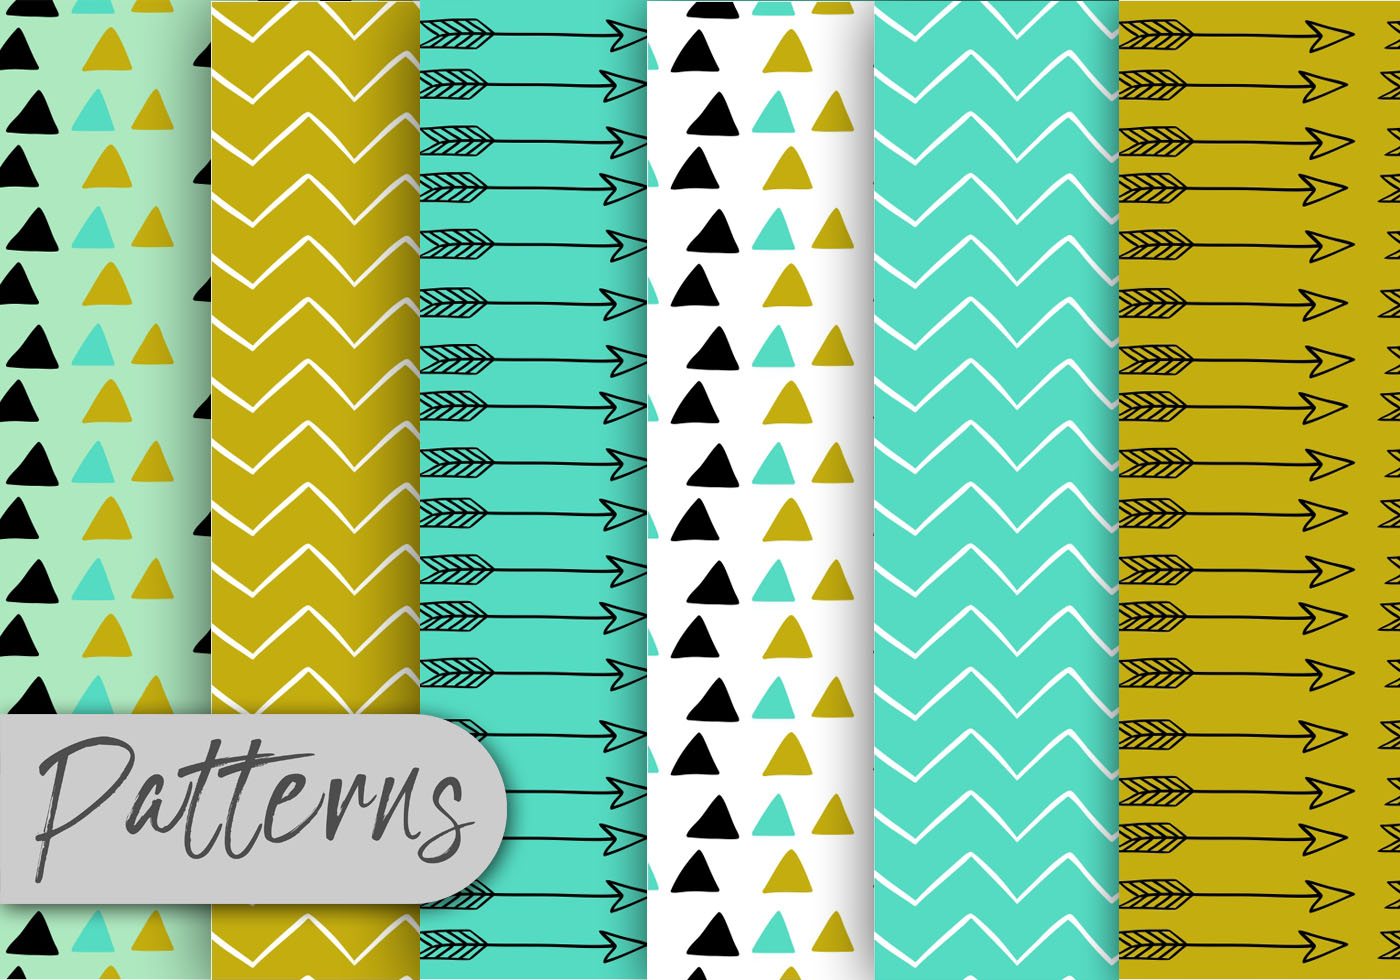 Cute Patterns For Wallpapers Cute Arrow Pattern Set Download Free Vector Art Stock